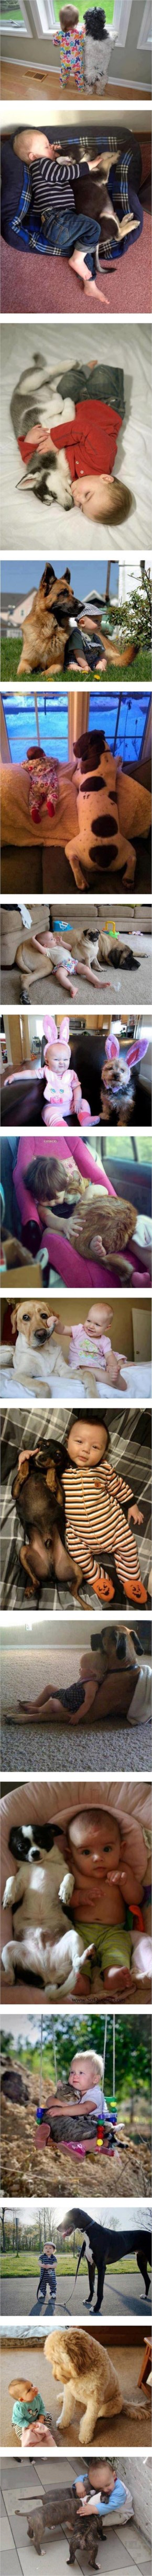 kids_and_pets